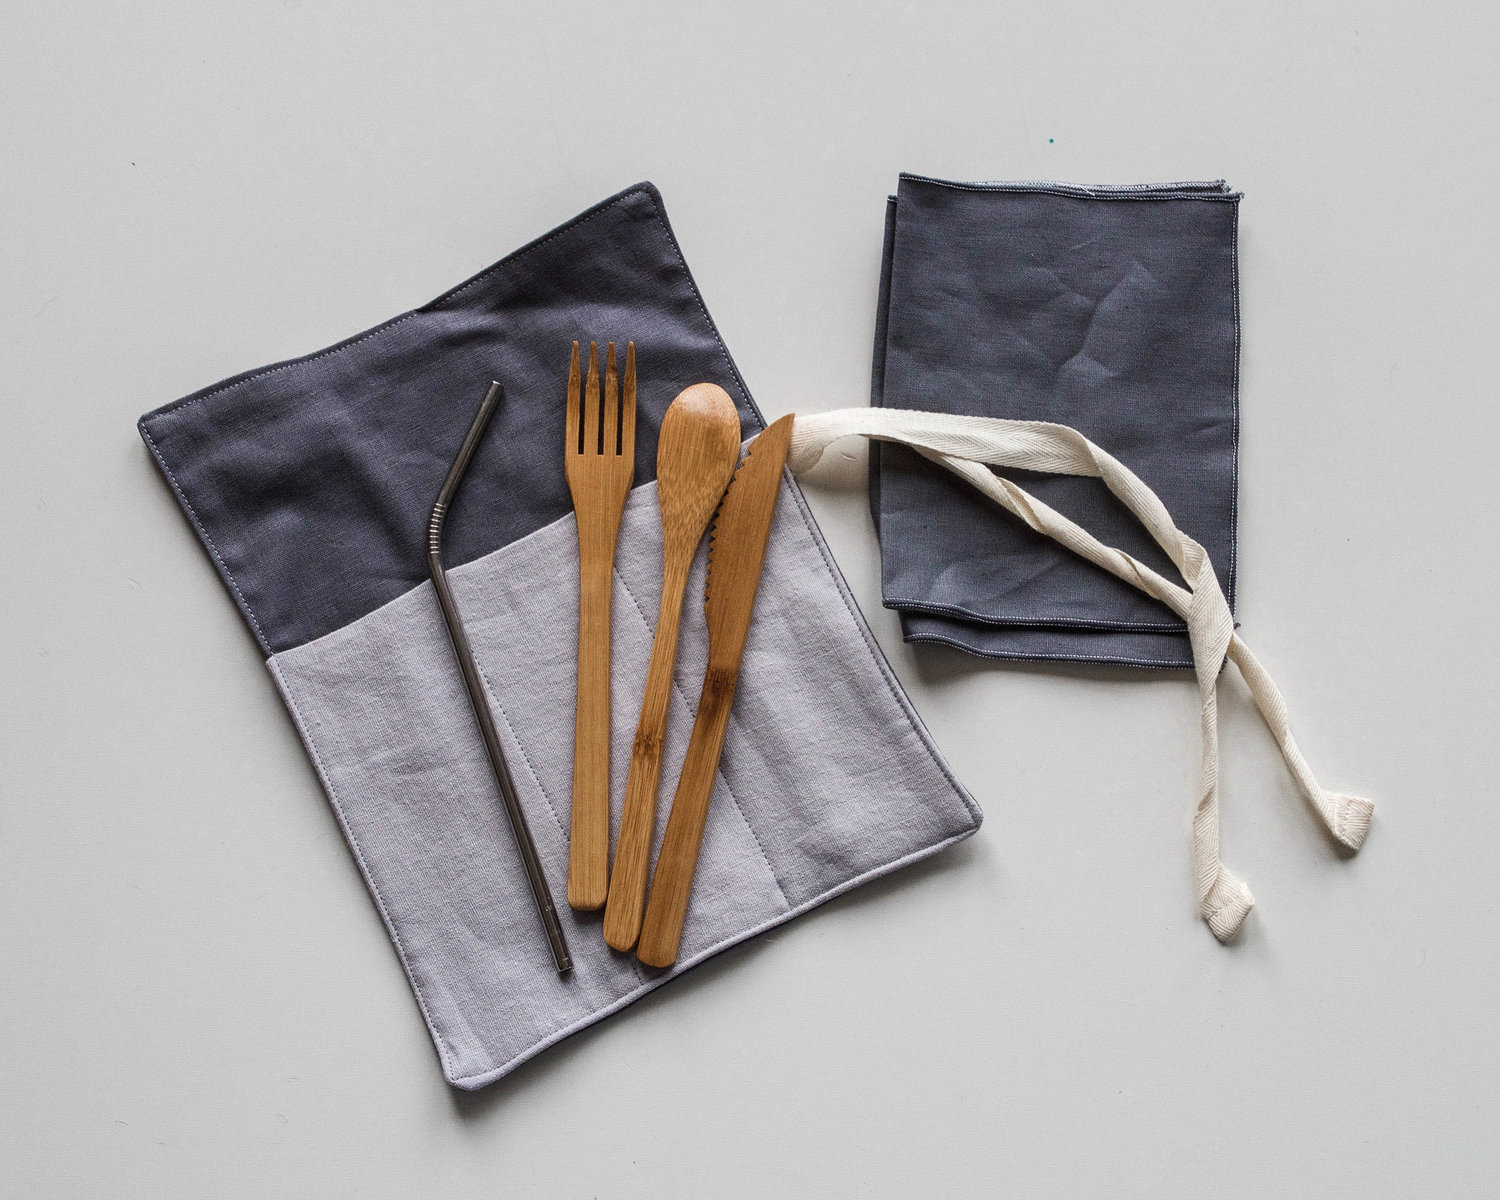 wood utensils and wrap